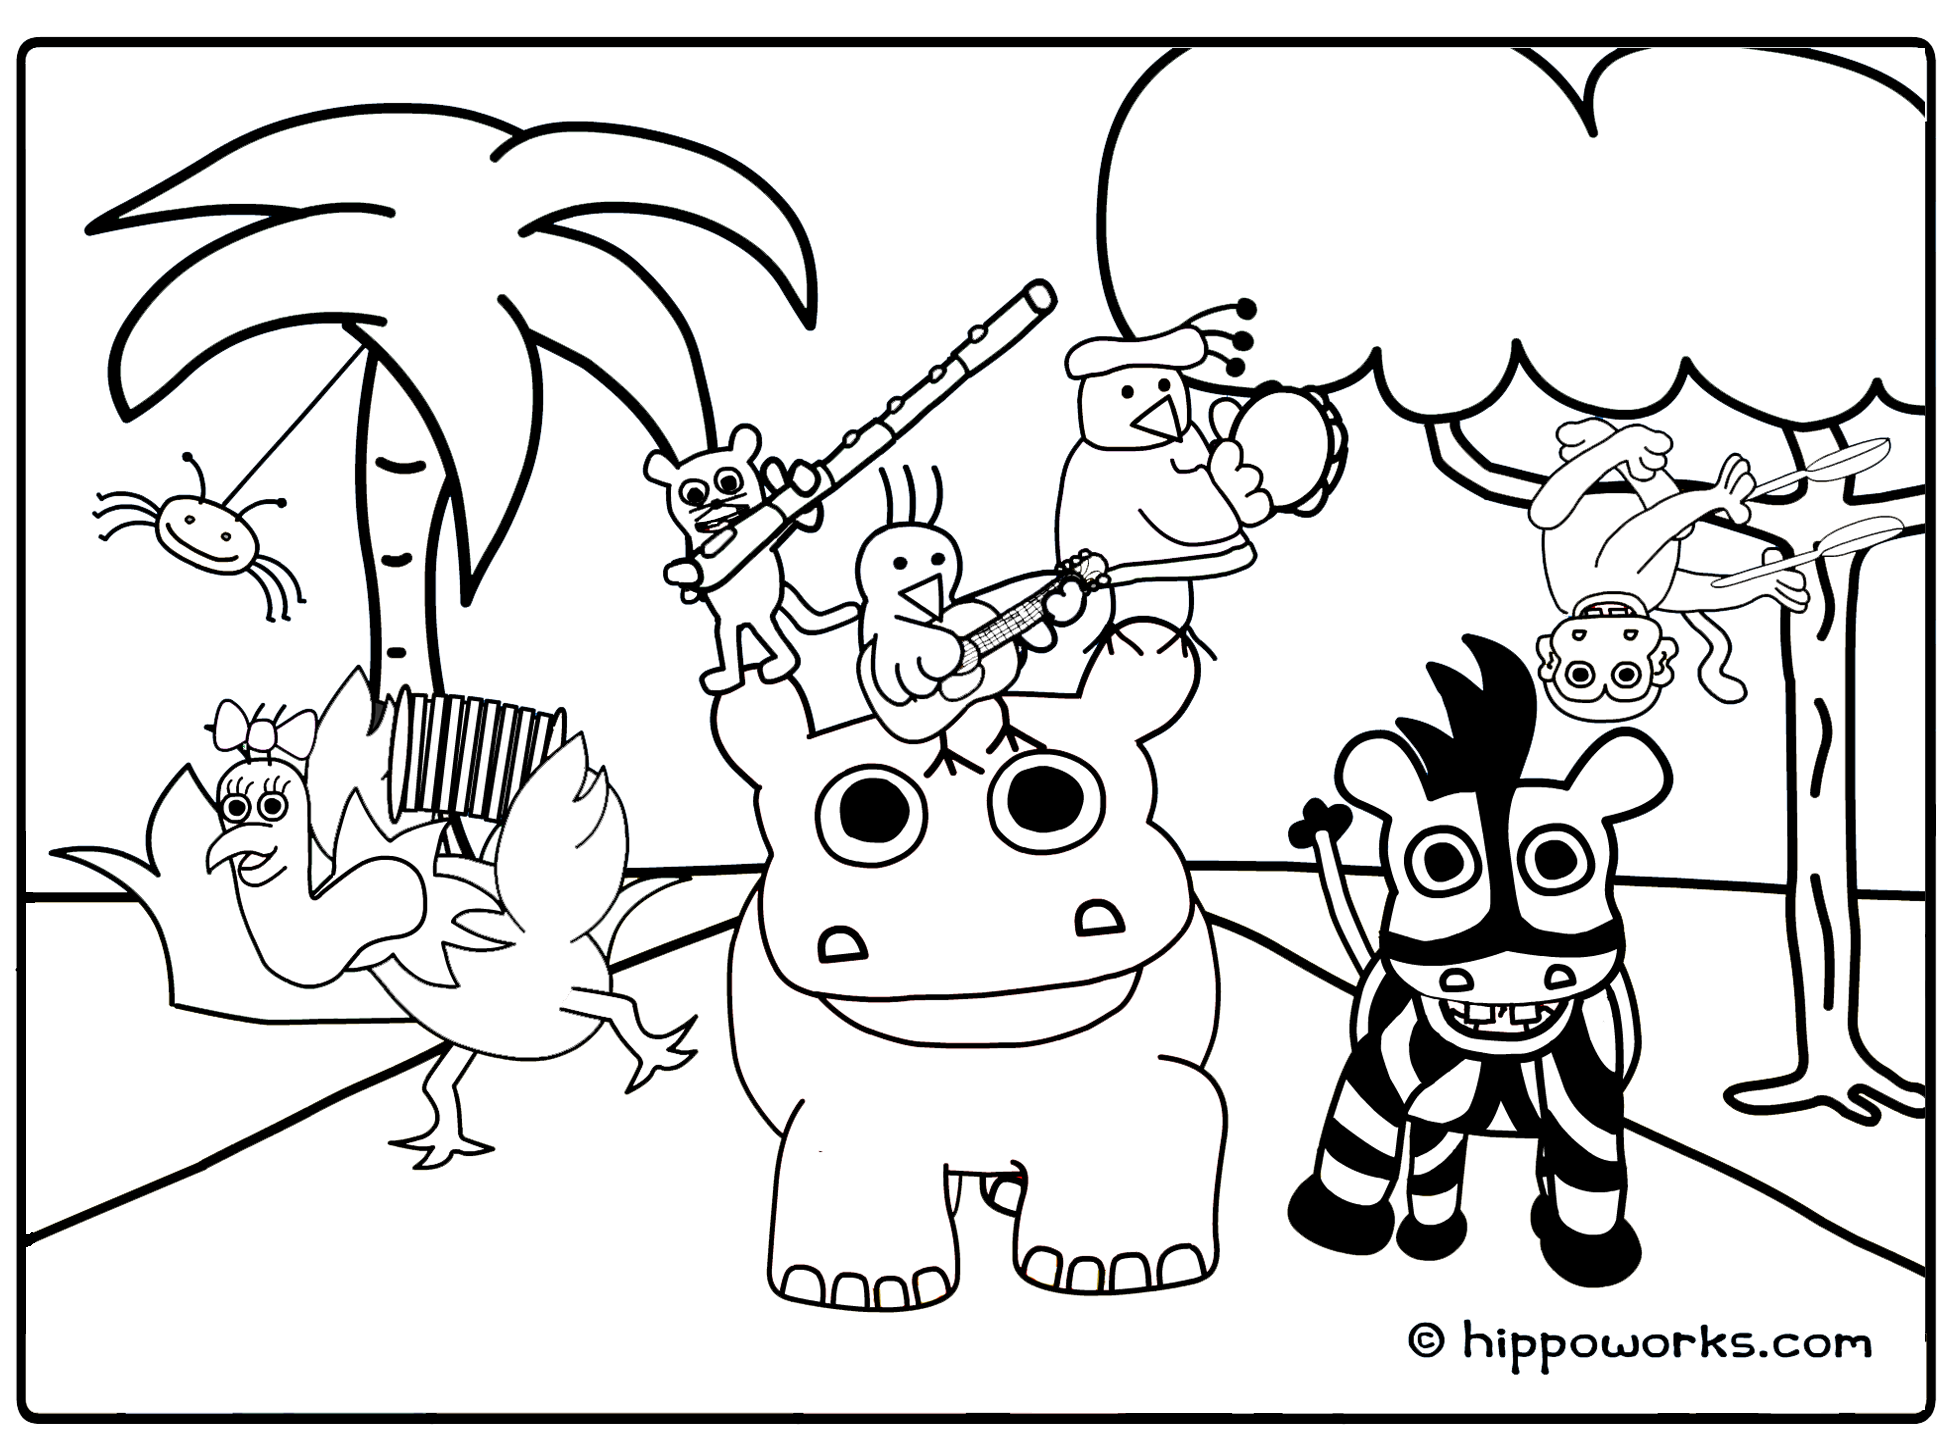 86 Top Coloring Pages For Animals In The Jungle , Free HD Download